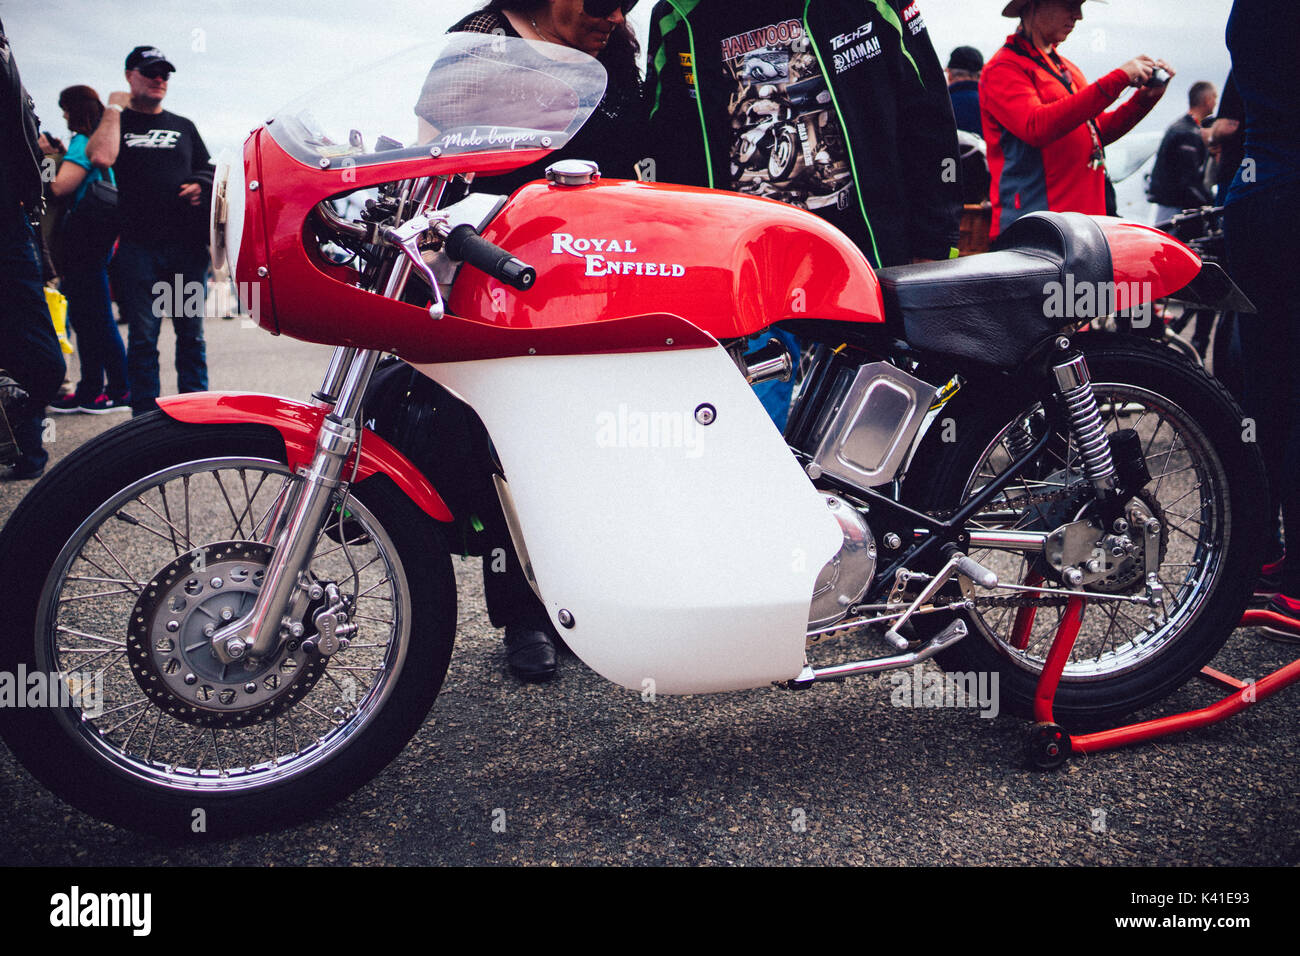 mv agusta classic stock photos mv agusta classic stock images alamy. Black Bedroom Furniture Sets. Home Design Ideas